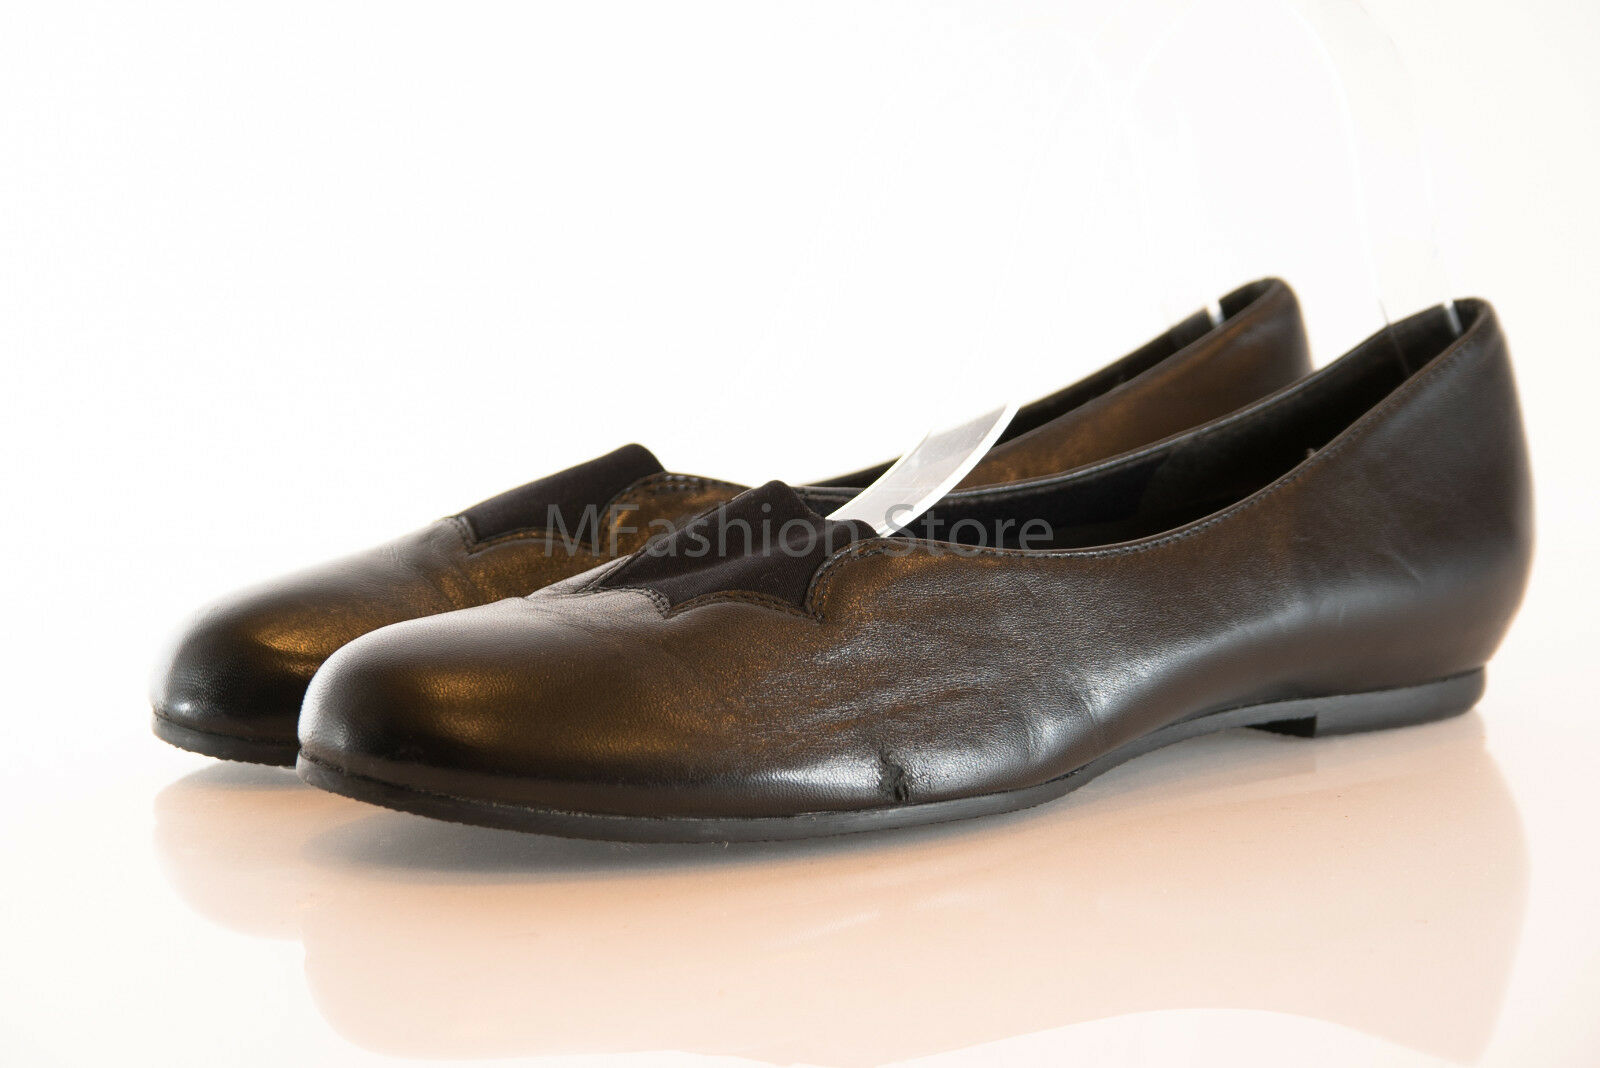 MUNRO Black Leather Loafers / Slip On Womens Shoes Size US 7N & 9.5N New